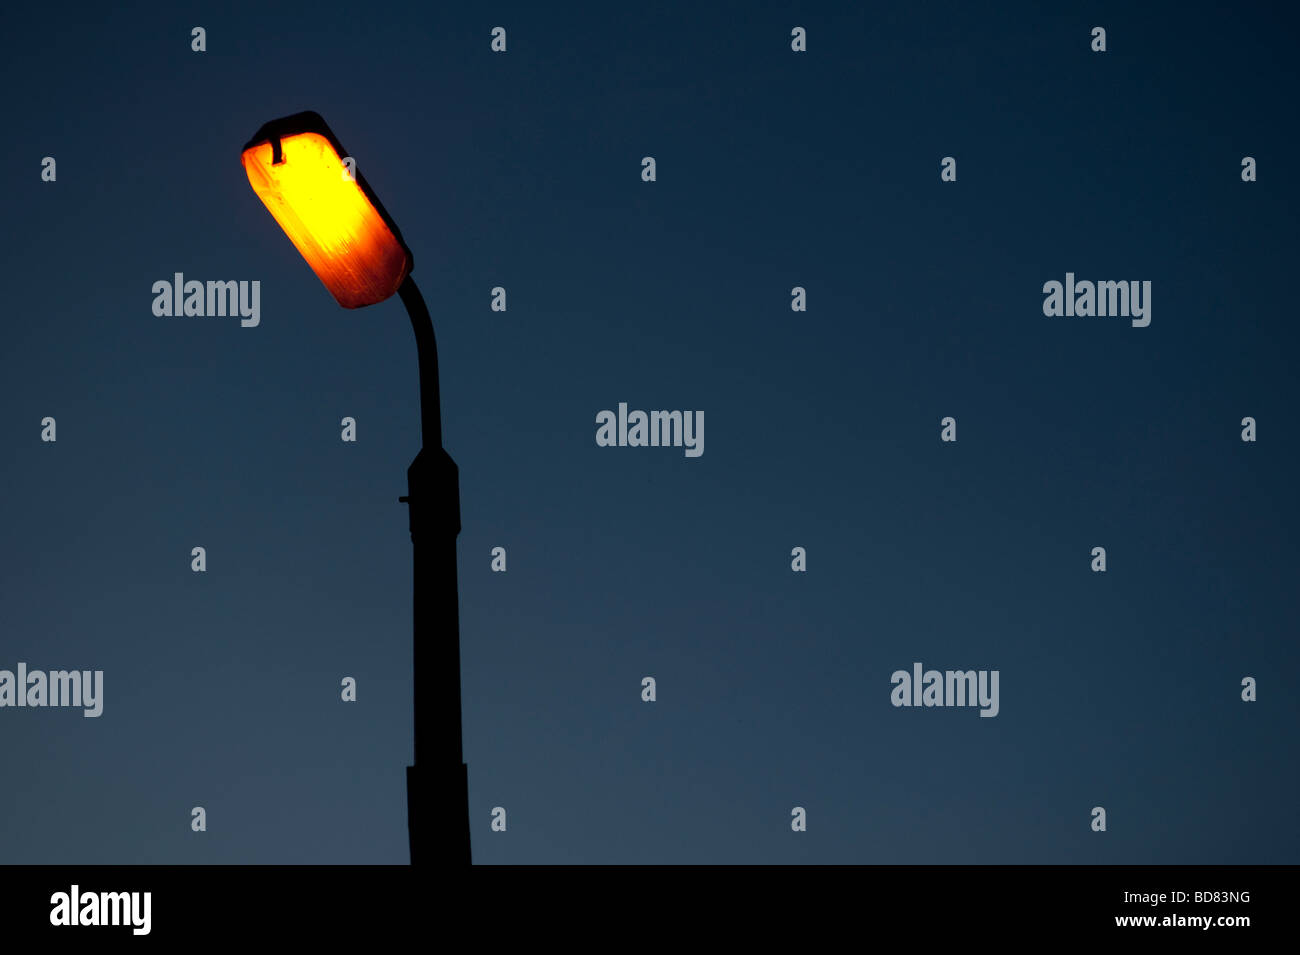 street lamp at night yellow sodium light - Stock Image